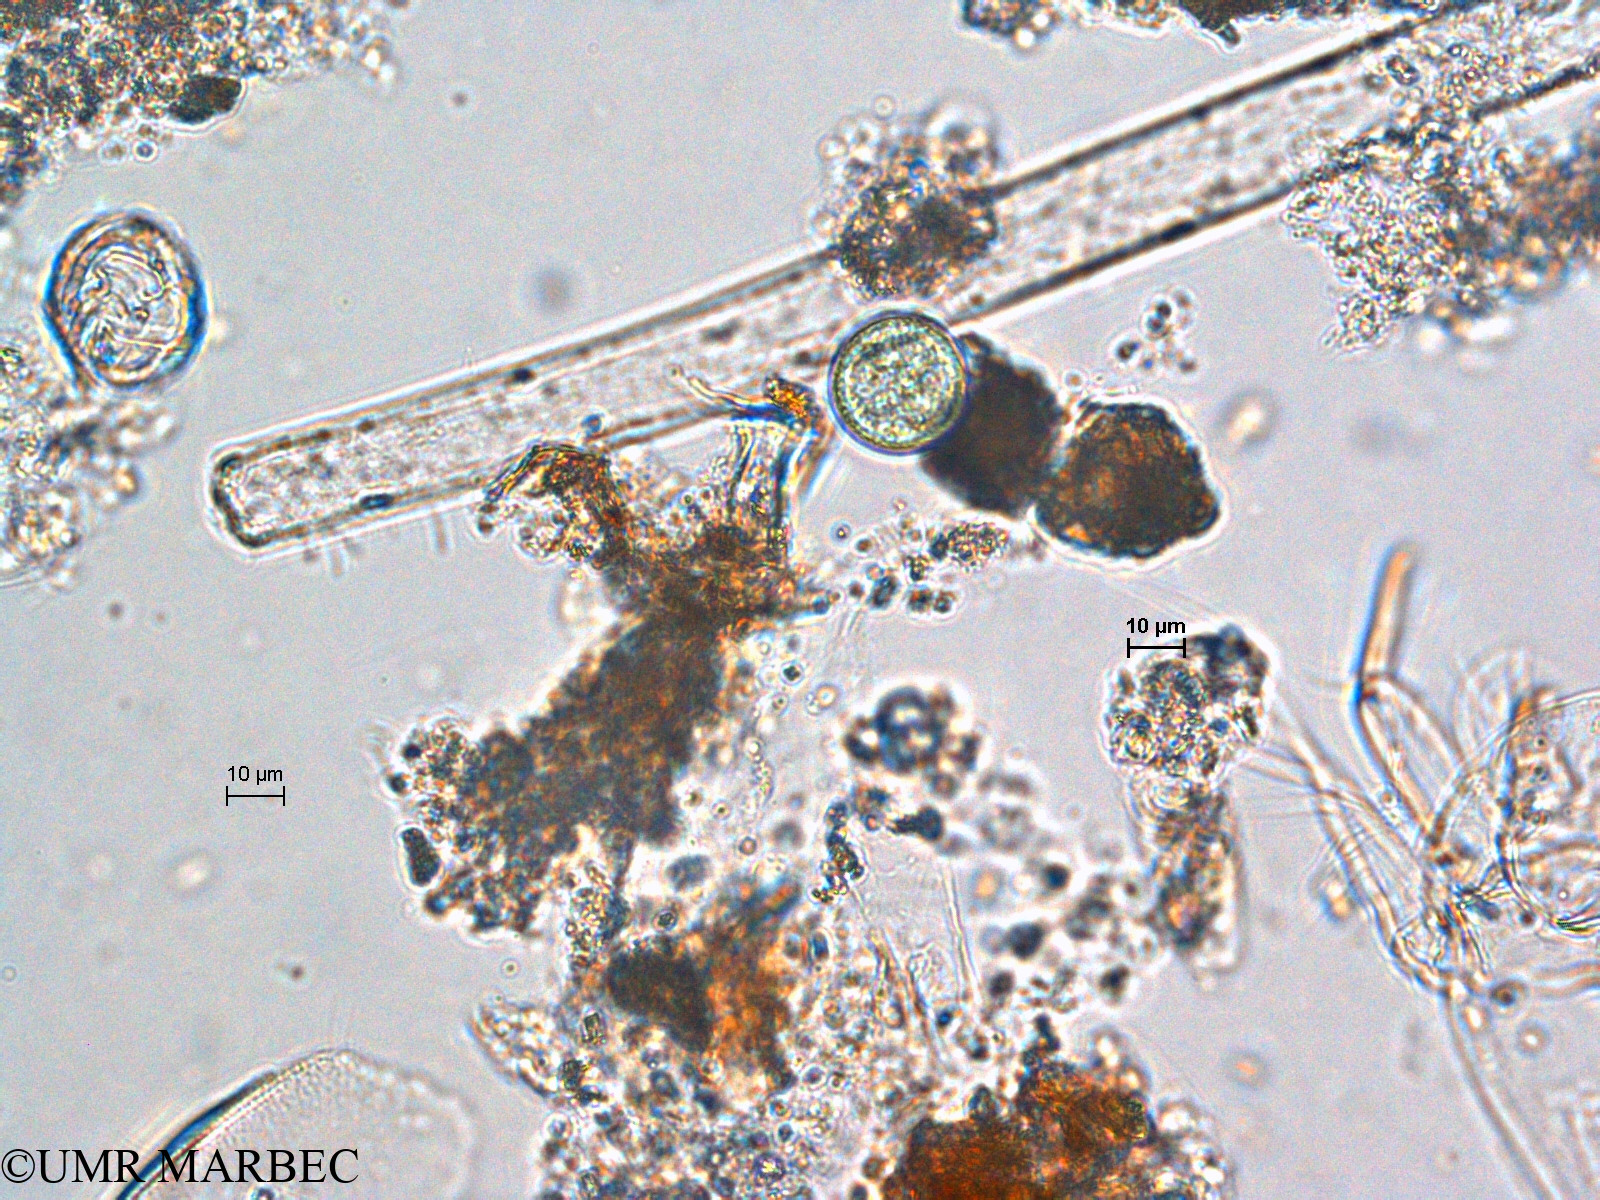 phyto/Scattered_Islands/europa/COMMA April 2011/Chroococcus turgidus (ancien C. sp8 -2)(copy).jpg